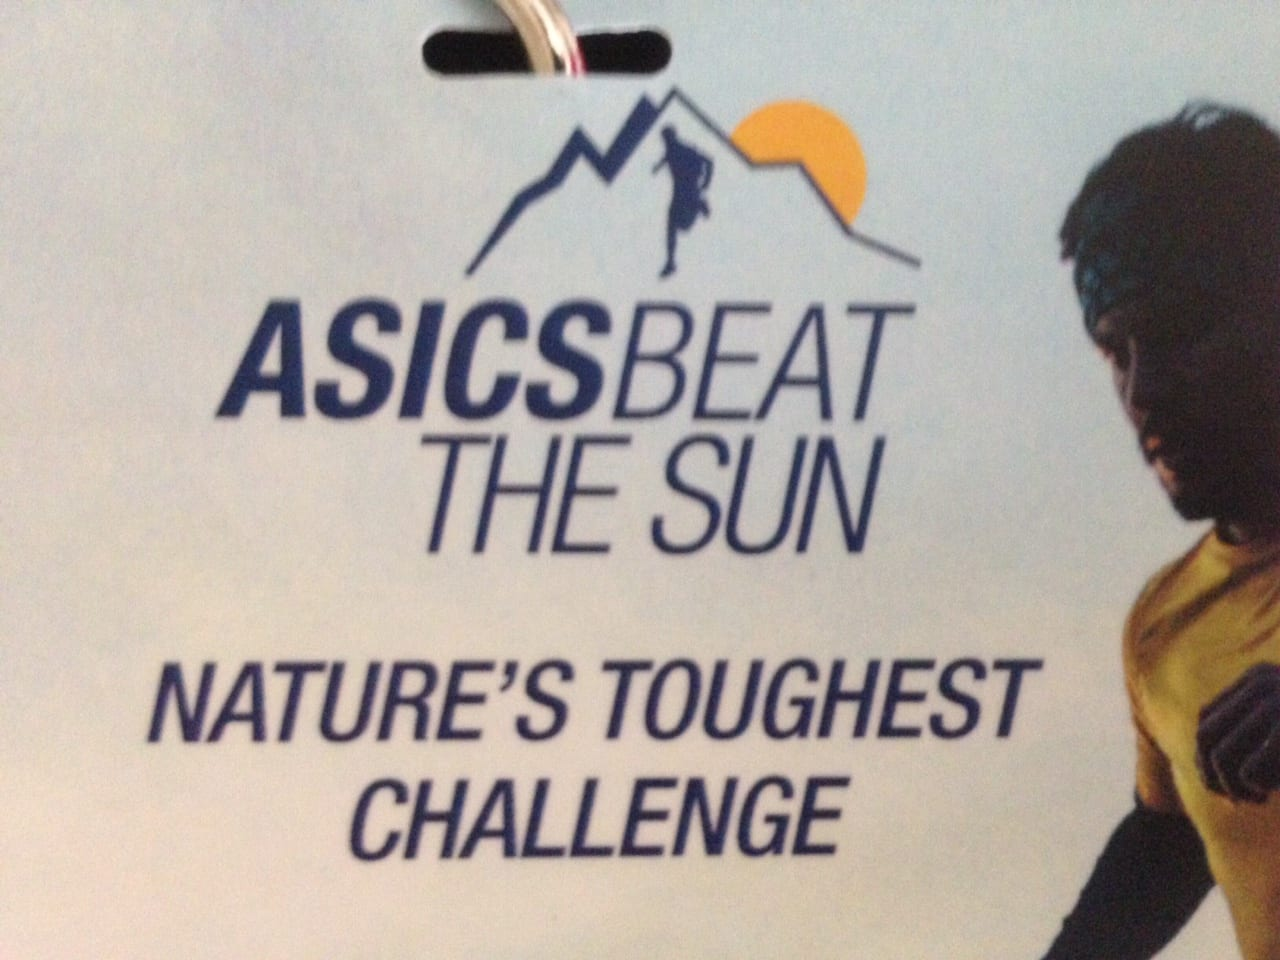 ASICS - BEAT THE SUN (4)